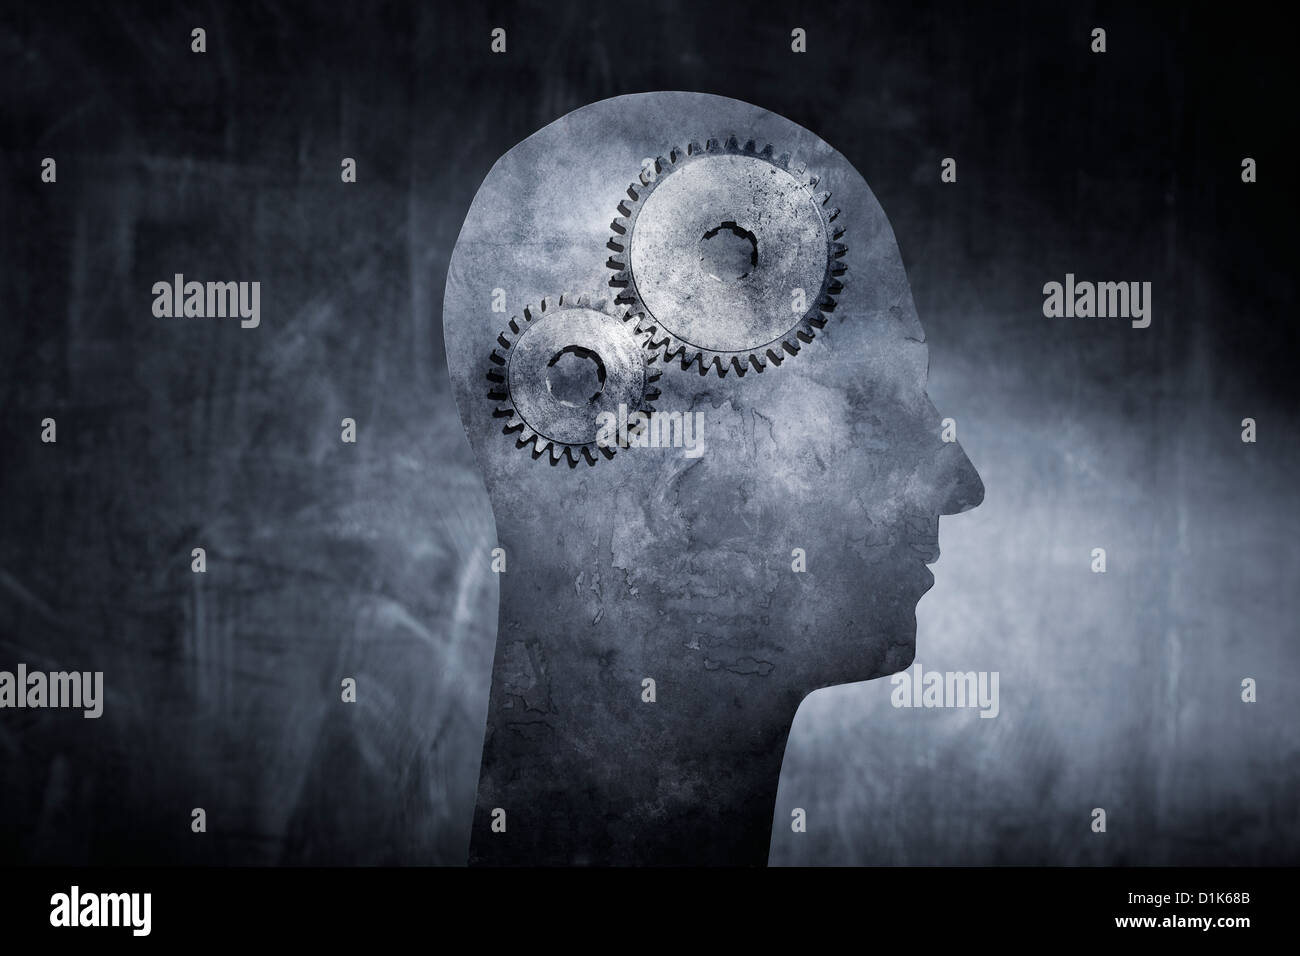 Conceptual image of a head with cog gears as brain. - Stock Image